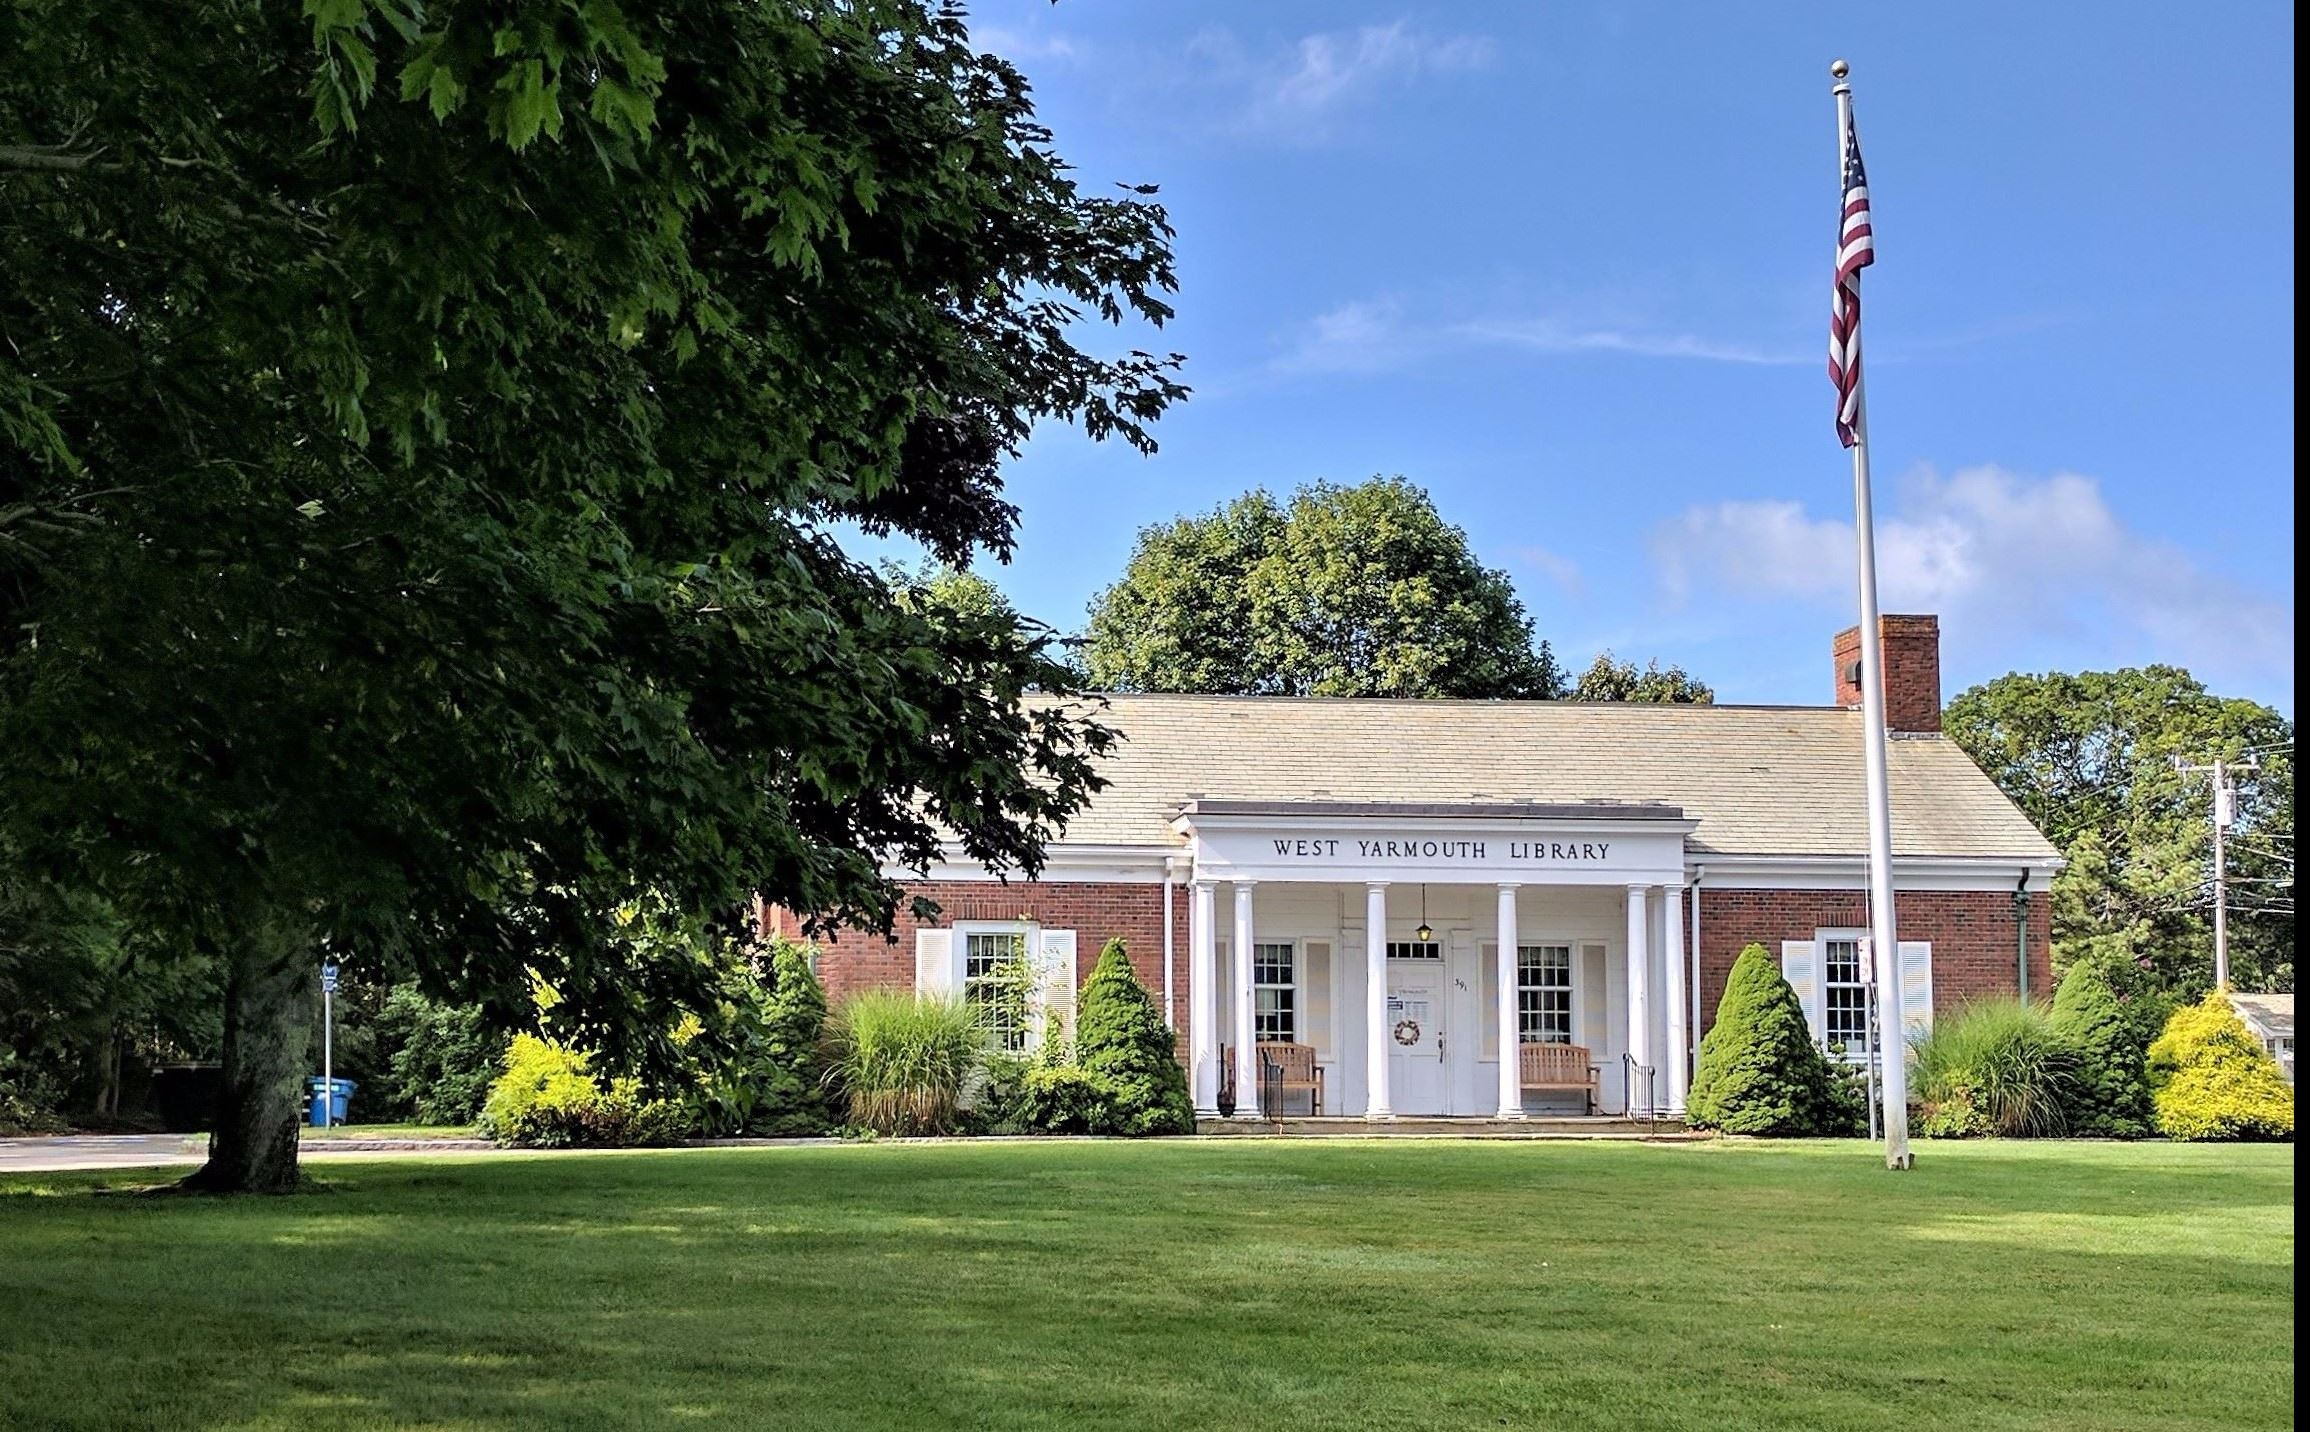 West Yarmouth Library Summer